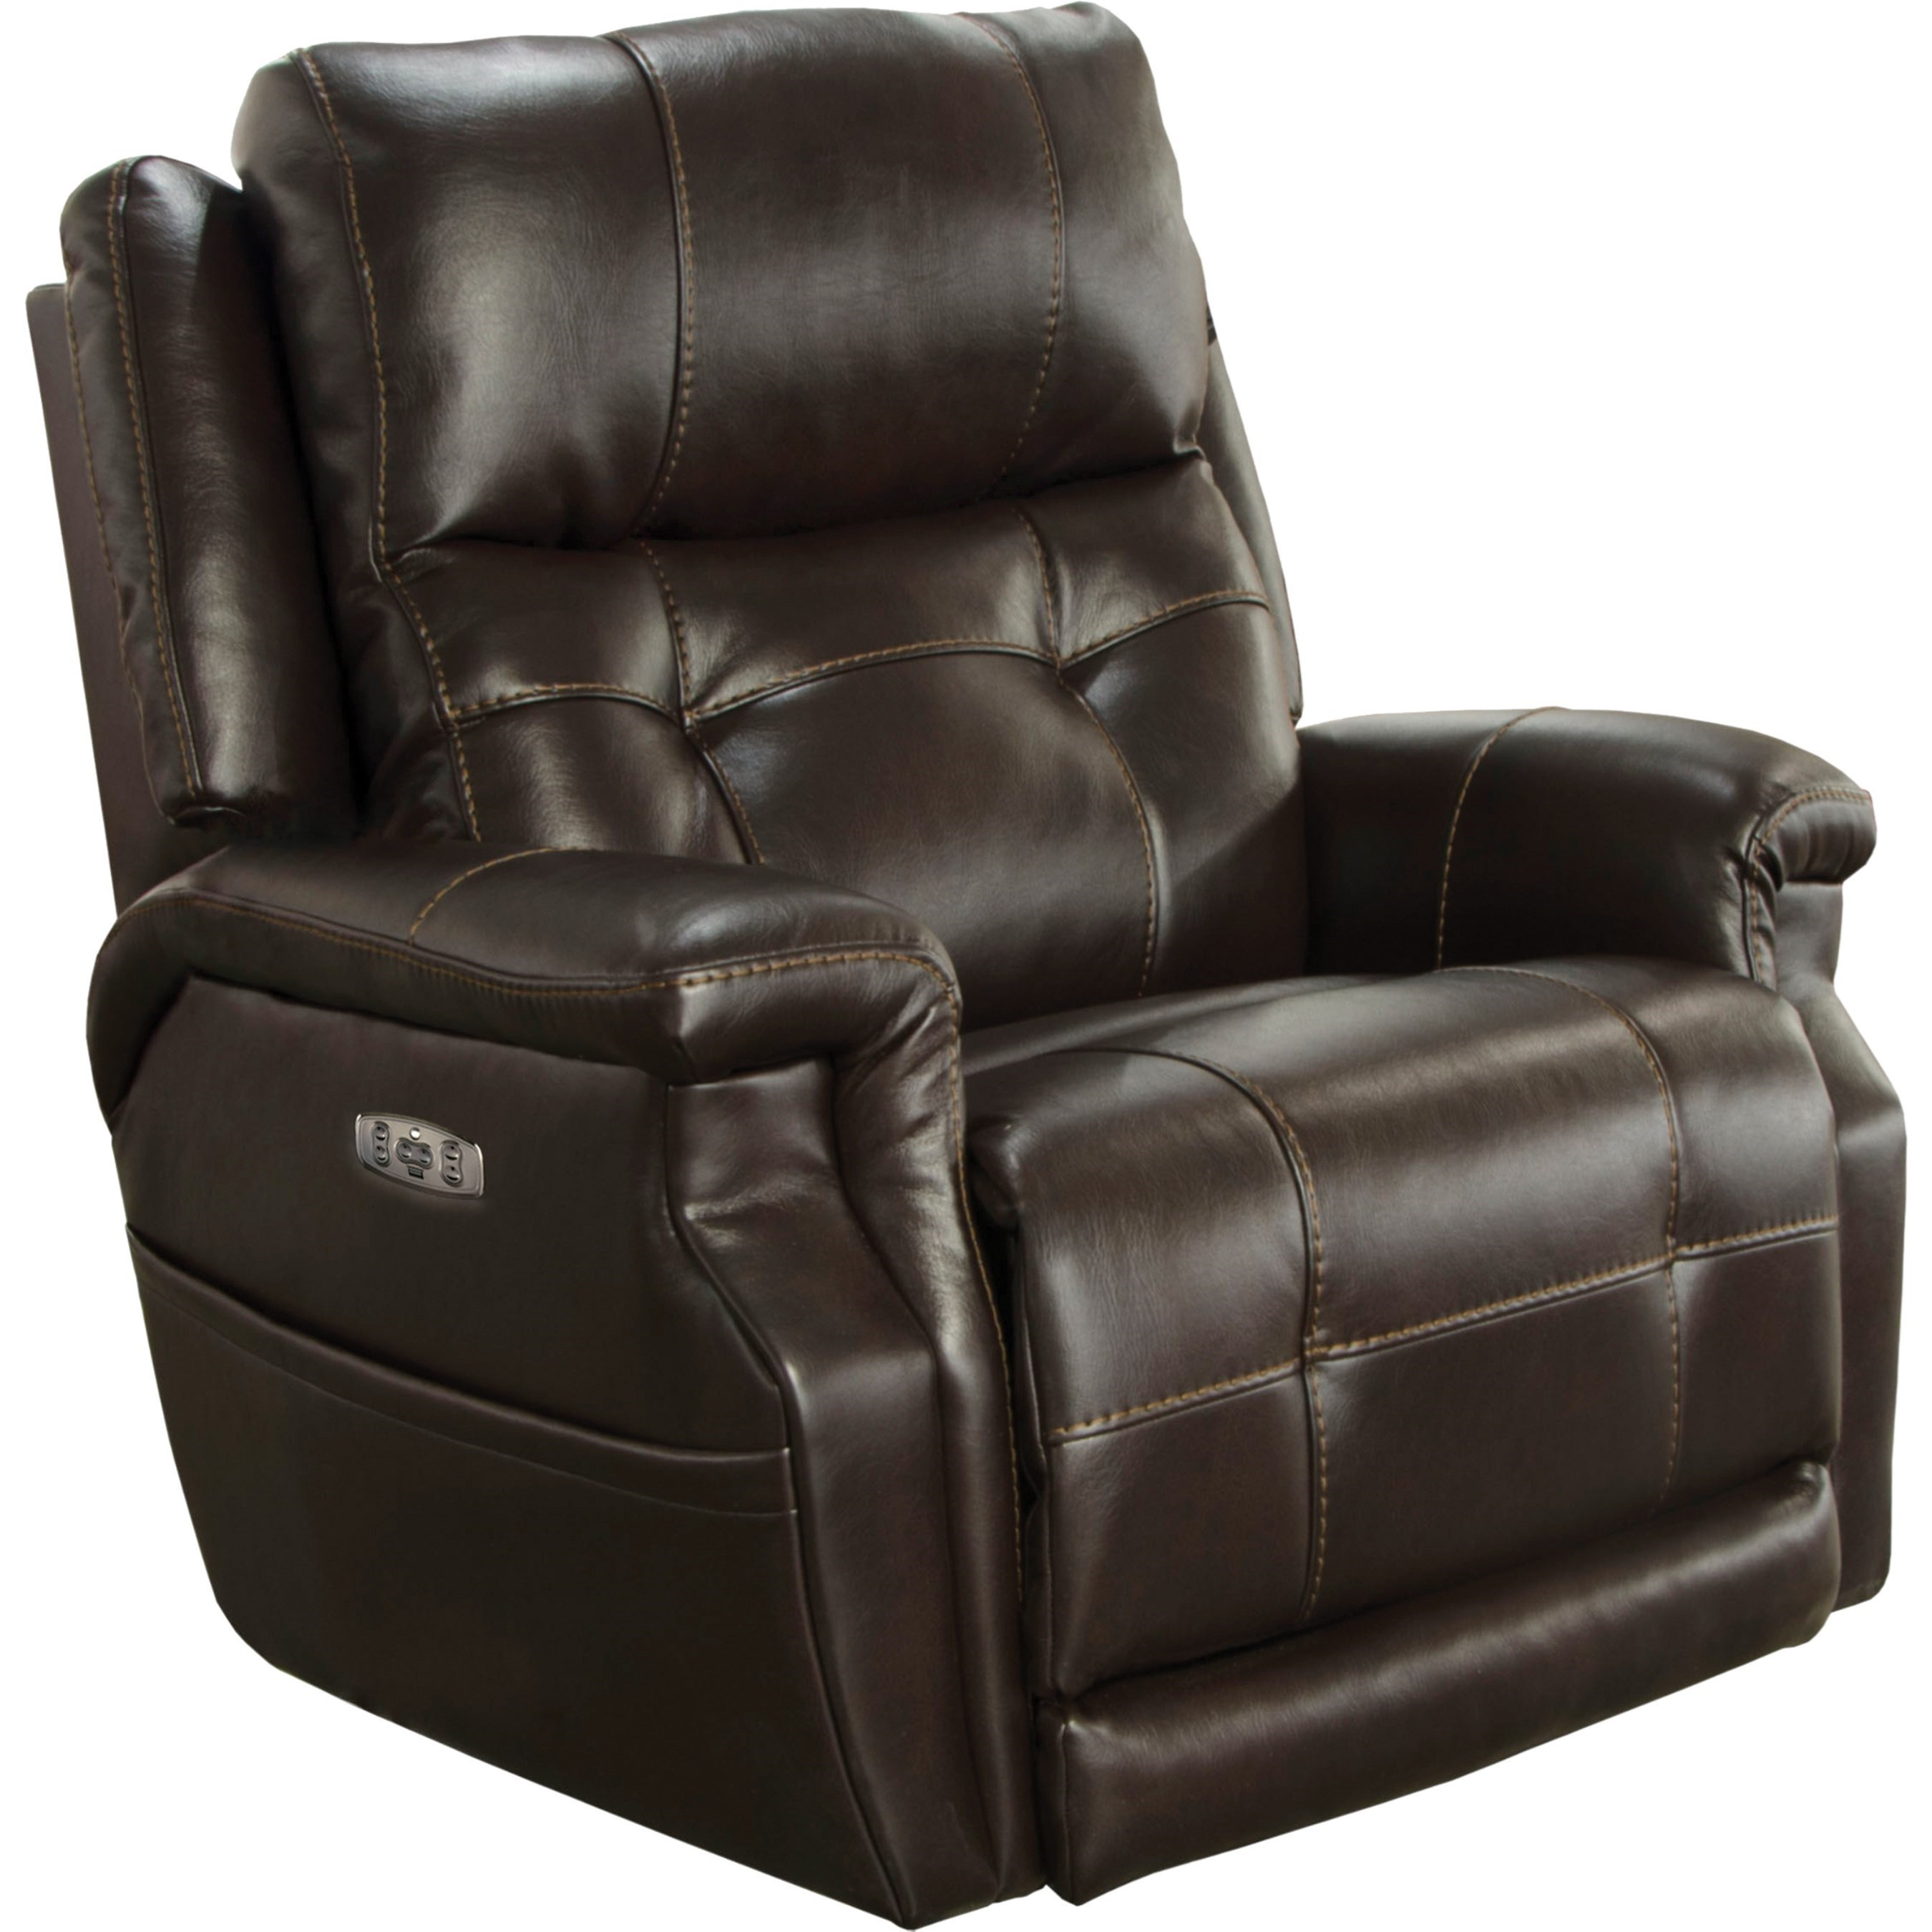 lay flat recliner chairs chair and table rentals catnapper motion recliners 764561 7 kepley power headrest with extended ottoman lumbar